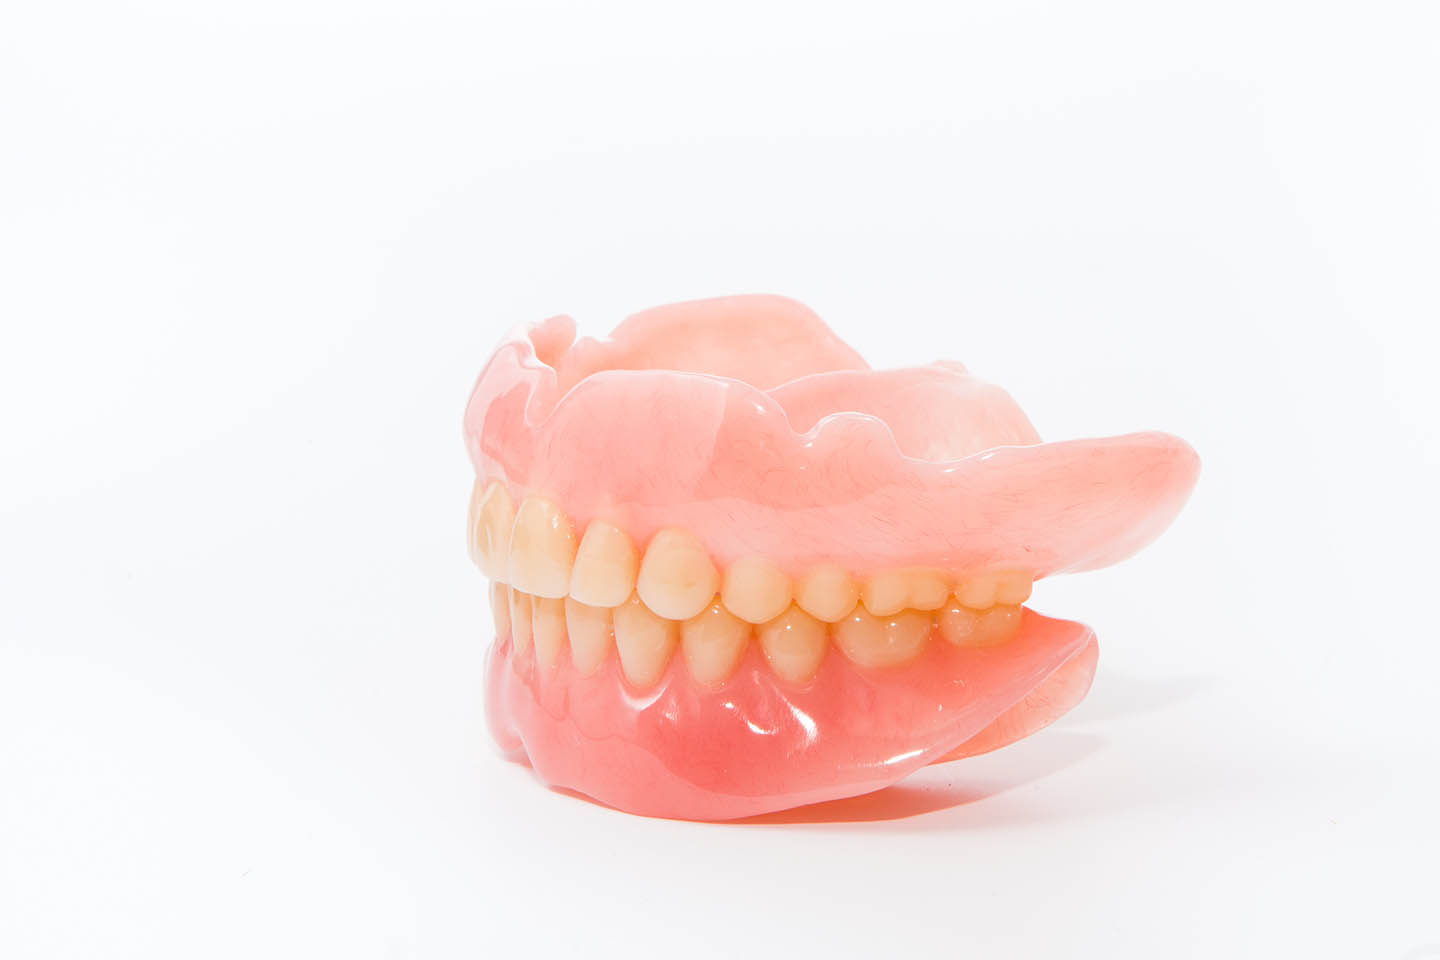 Dentures in front of white background